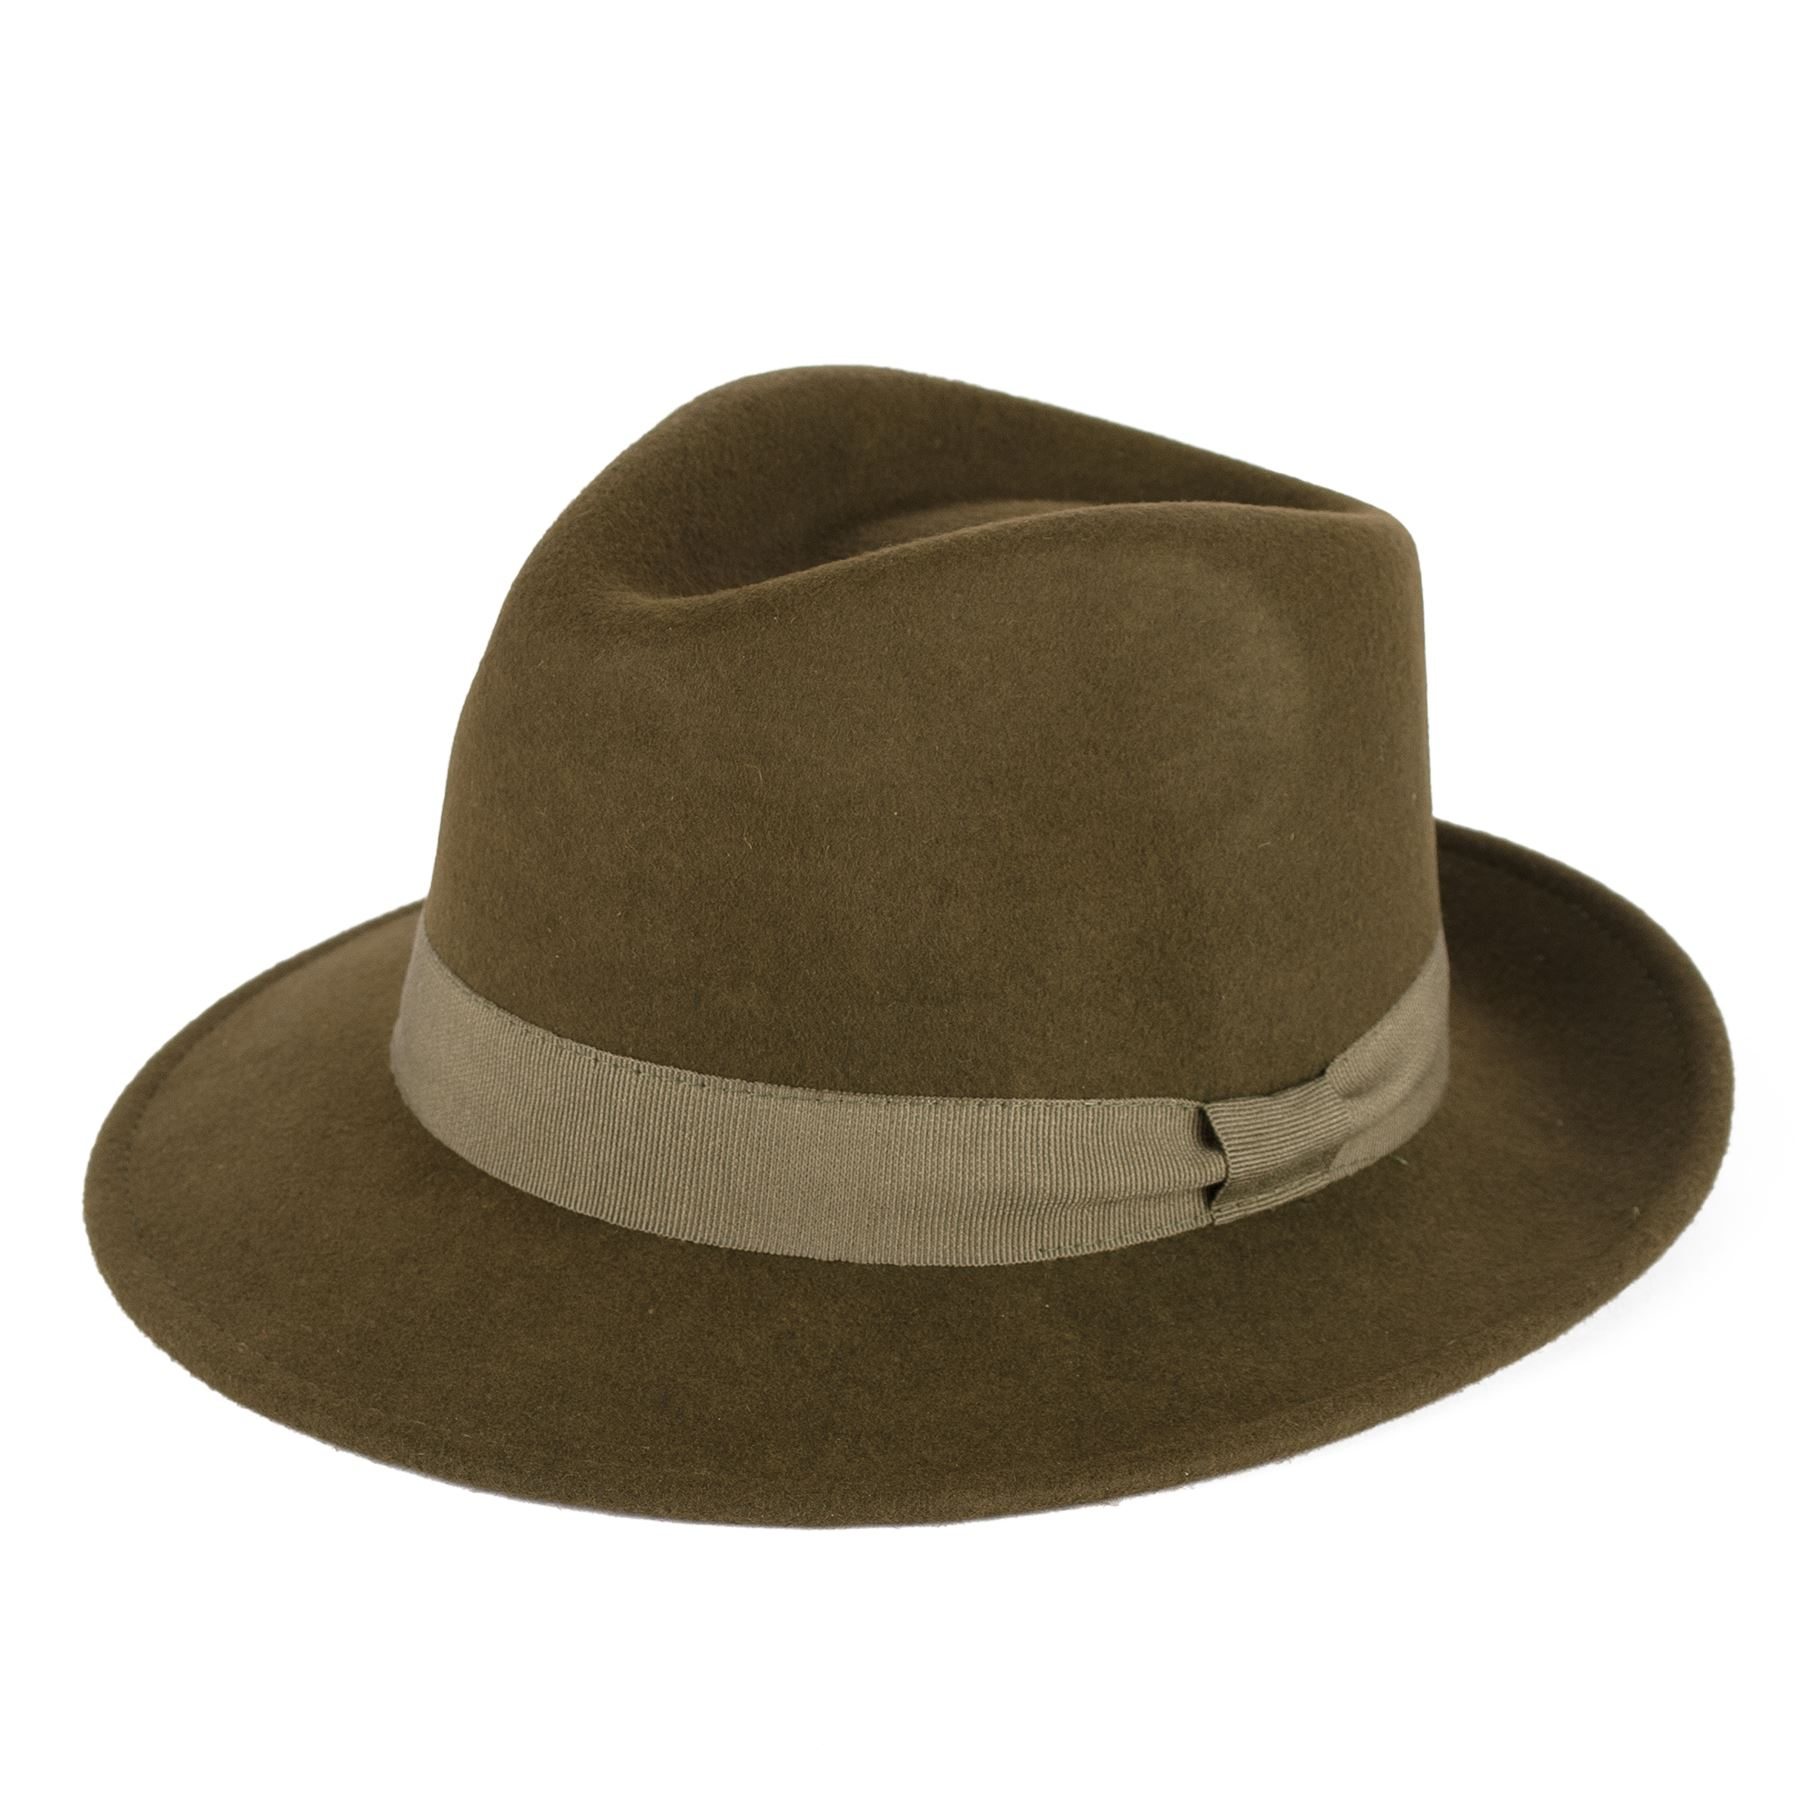 Mens Ladies Fedora Hat 100 Wool Felt Made In Italy